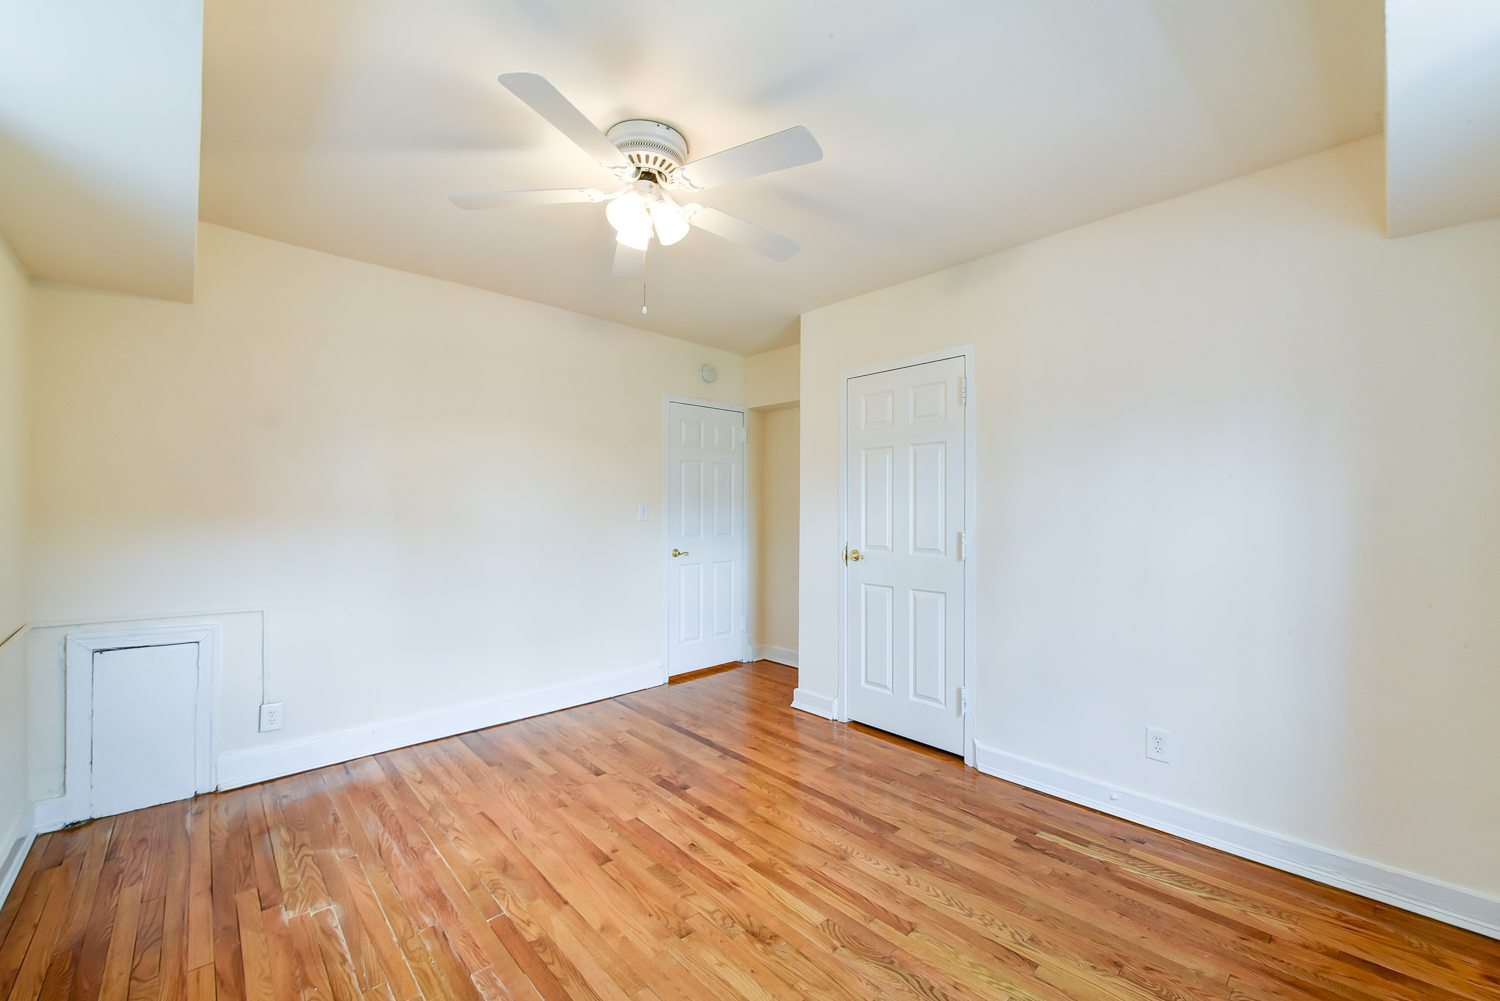 Cheap 1 Bedroom Apartments For Rent In Washington Dc Washington Apartments For Rent Cathedral